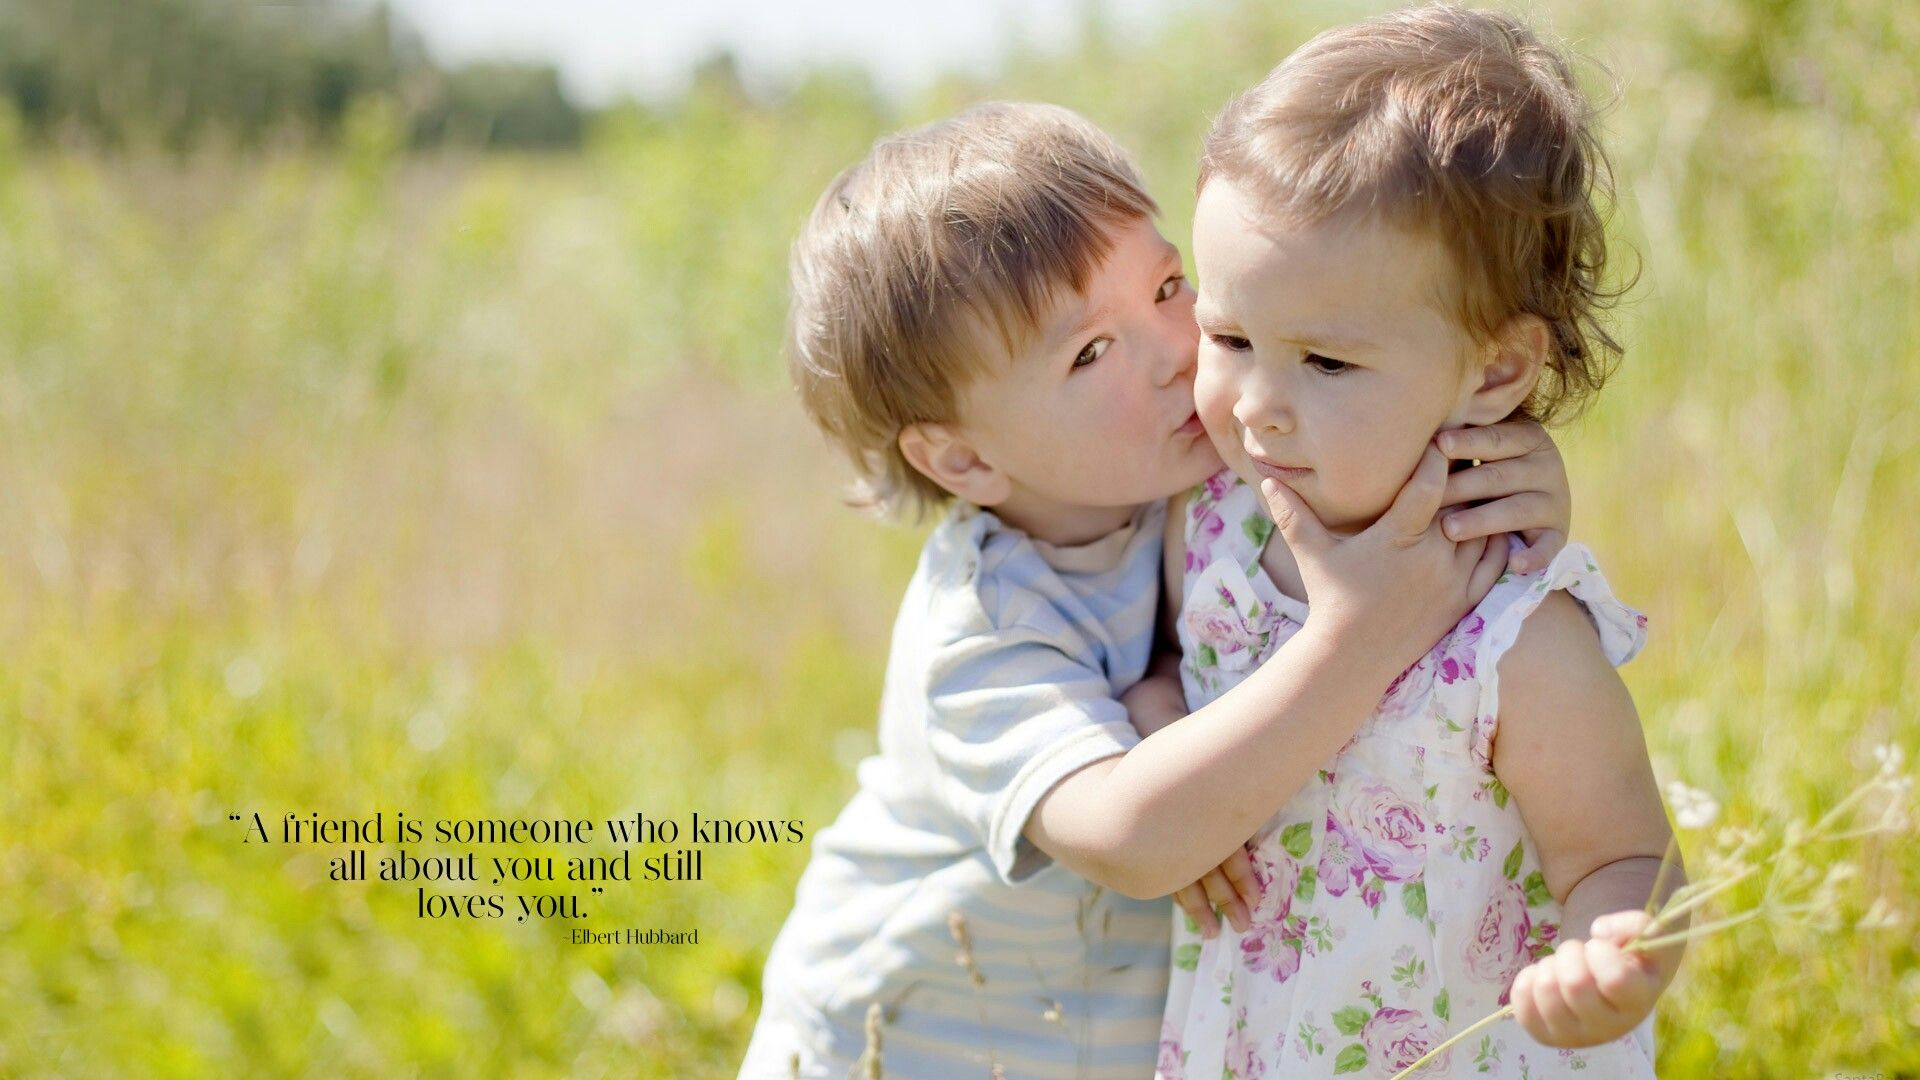 Best Friends Forever Quotes Images And Wallpapers Image Of Friendship